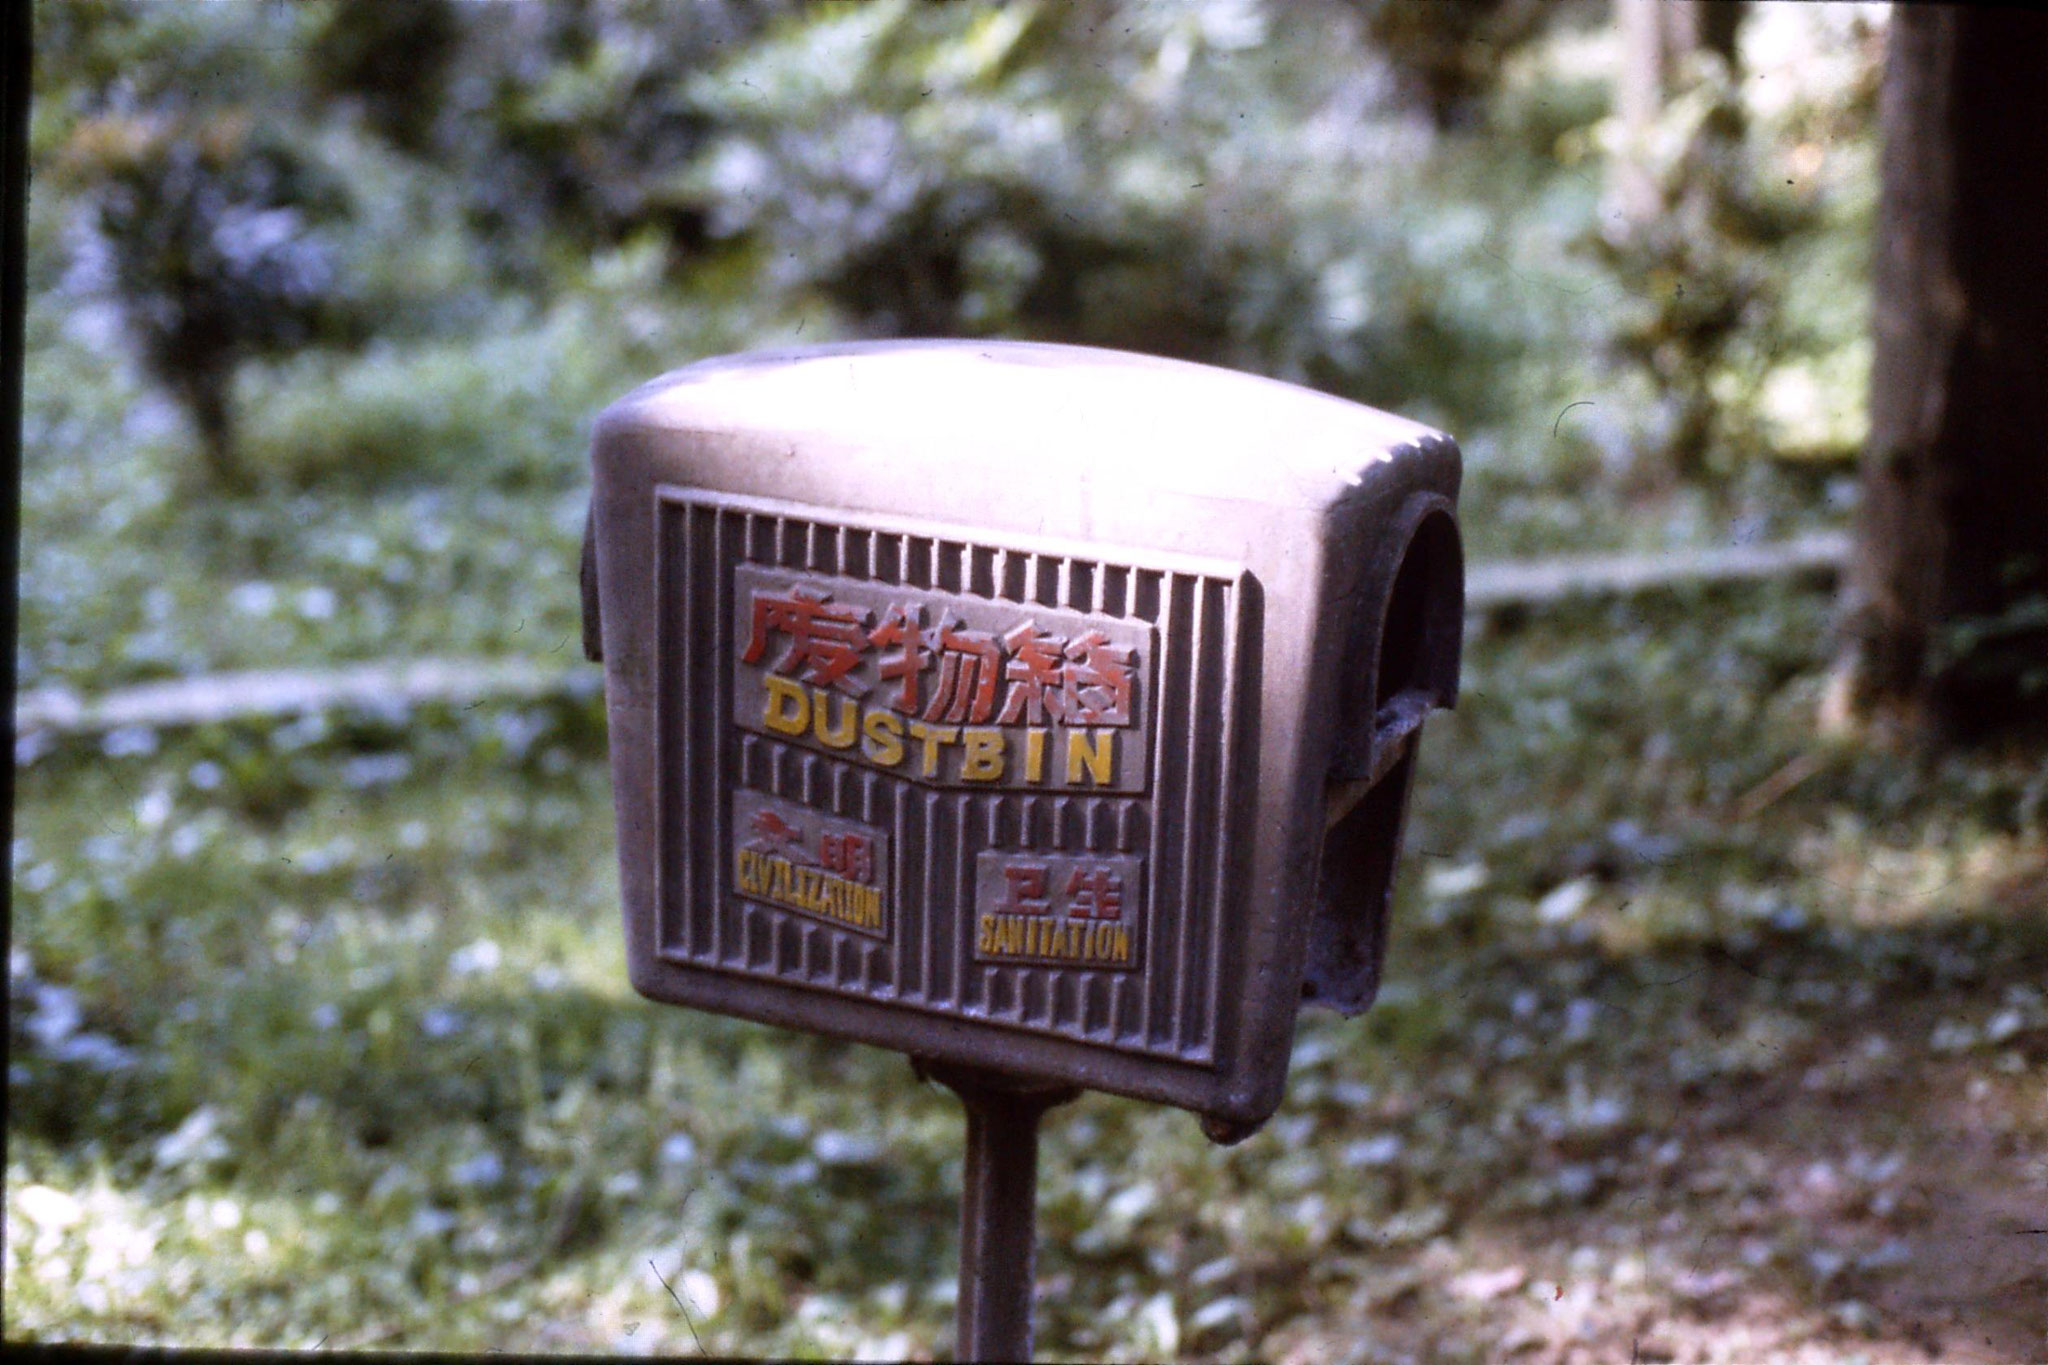 31/5/1989: 28 rubbish bin in park